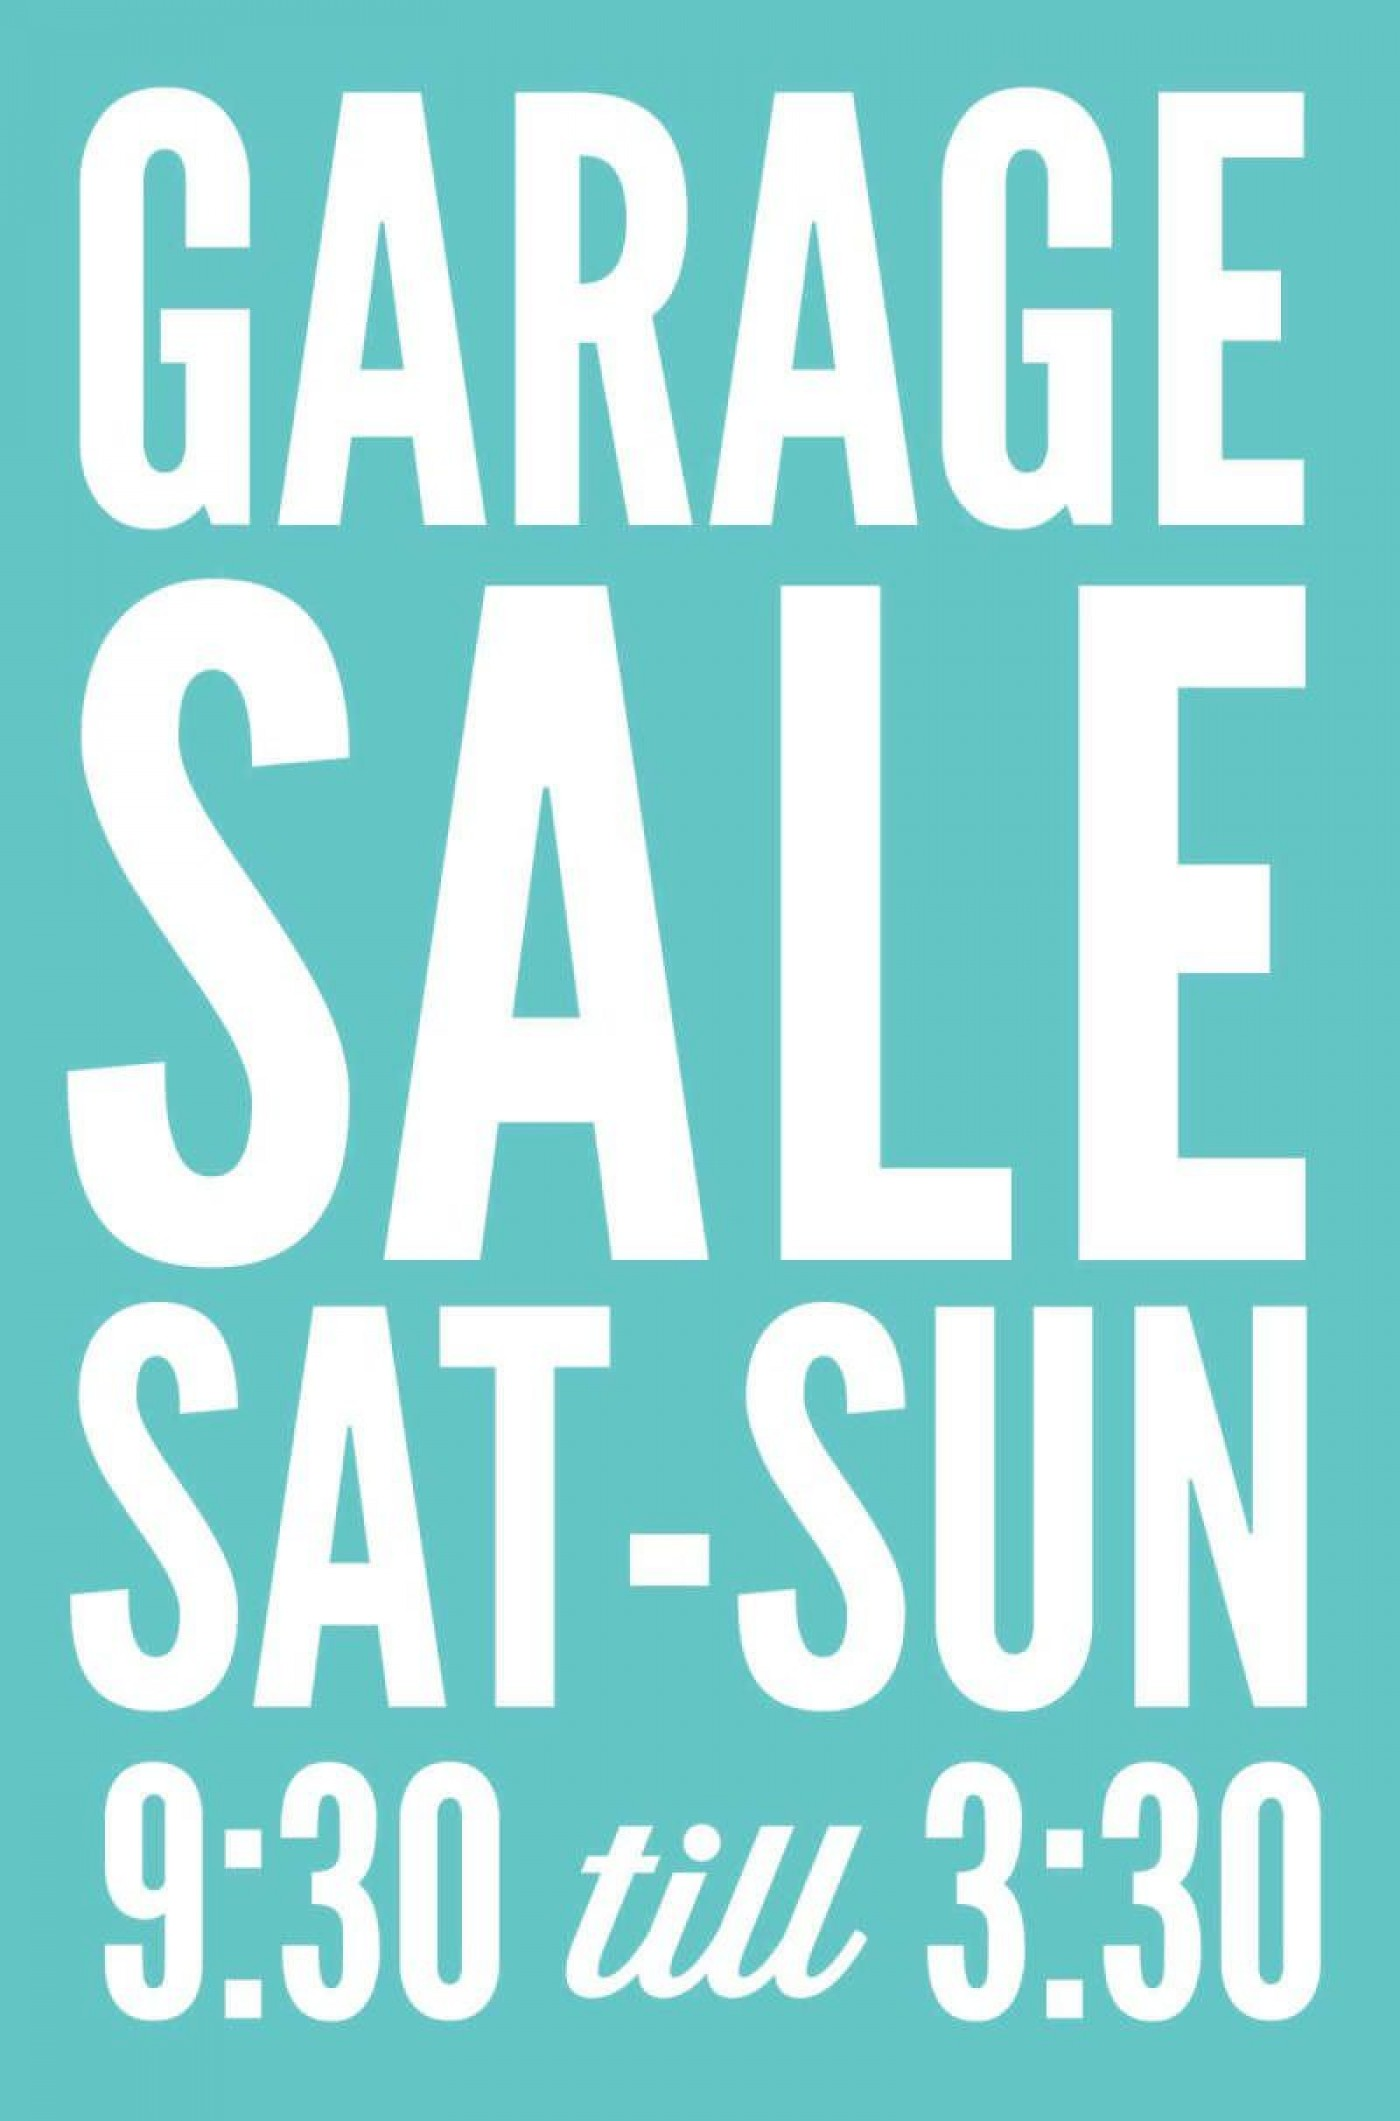 005 Frightening Garage Sale Sign Template Picture  Flyer Microsoft Word Community Yard Free Rummage1400